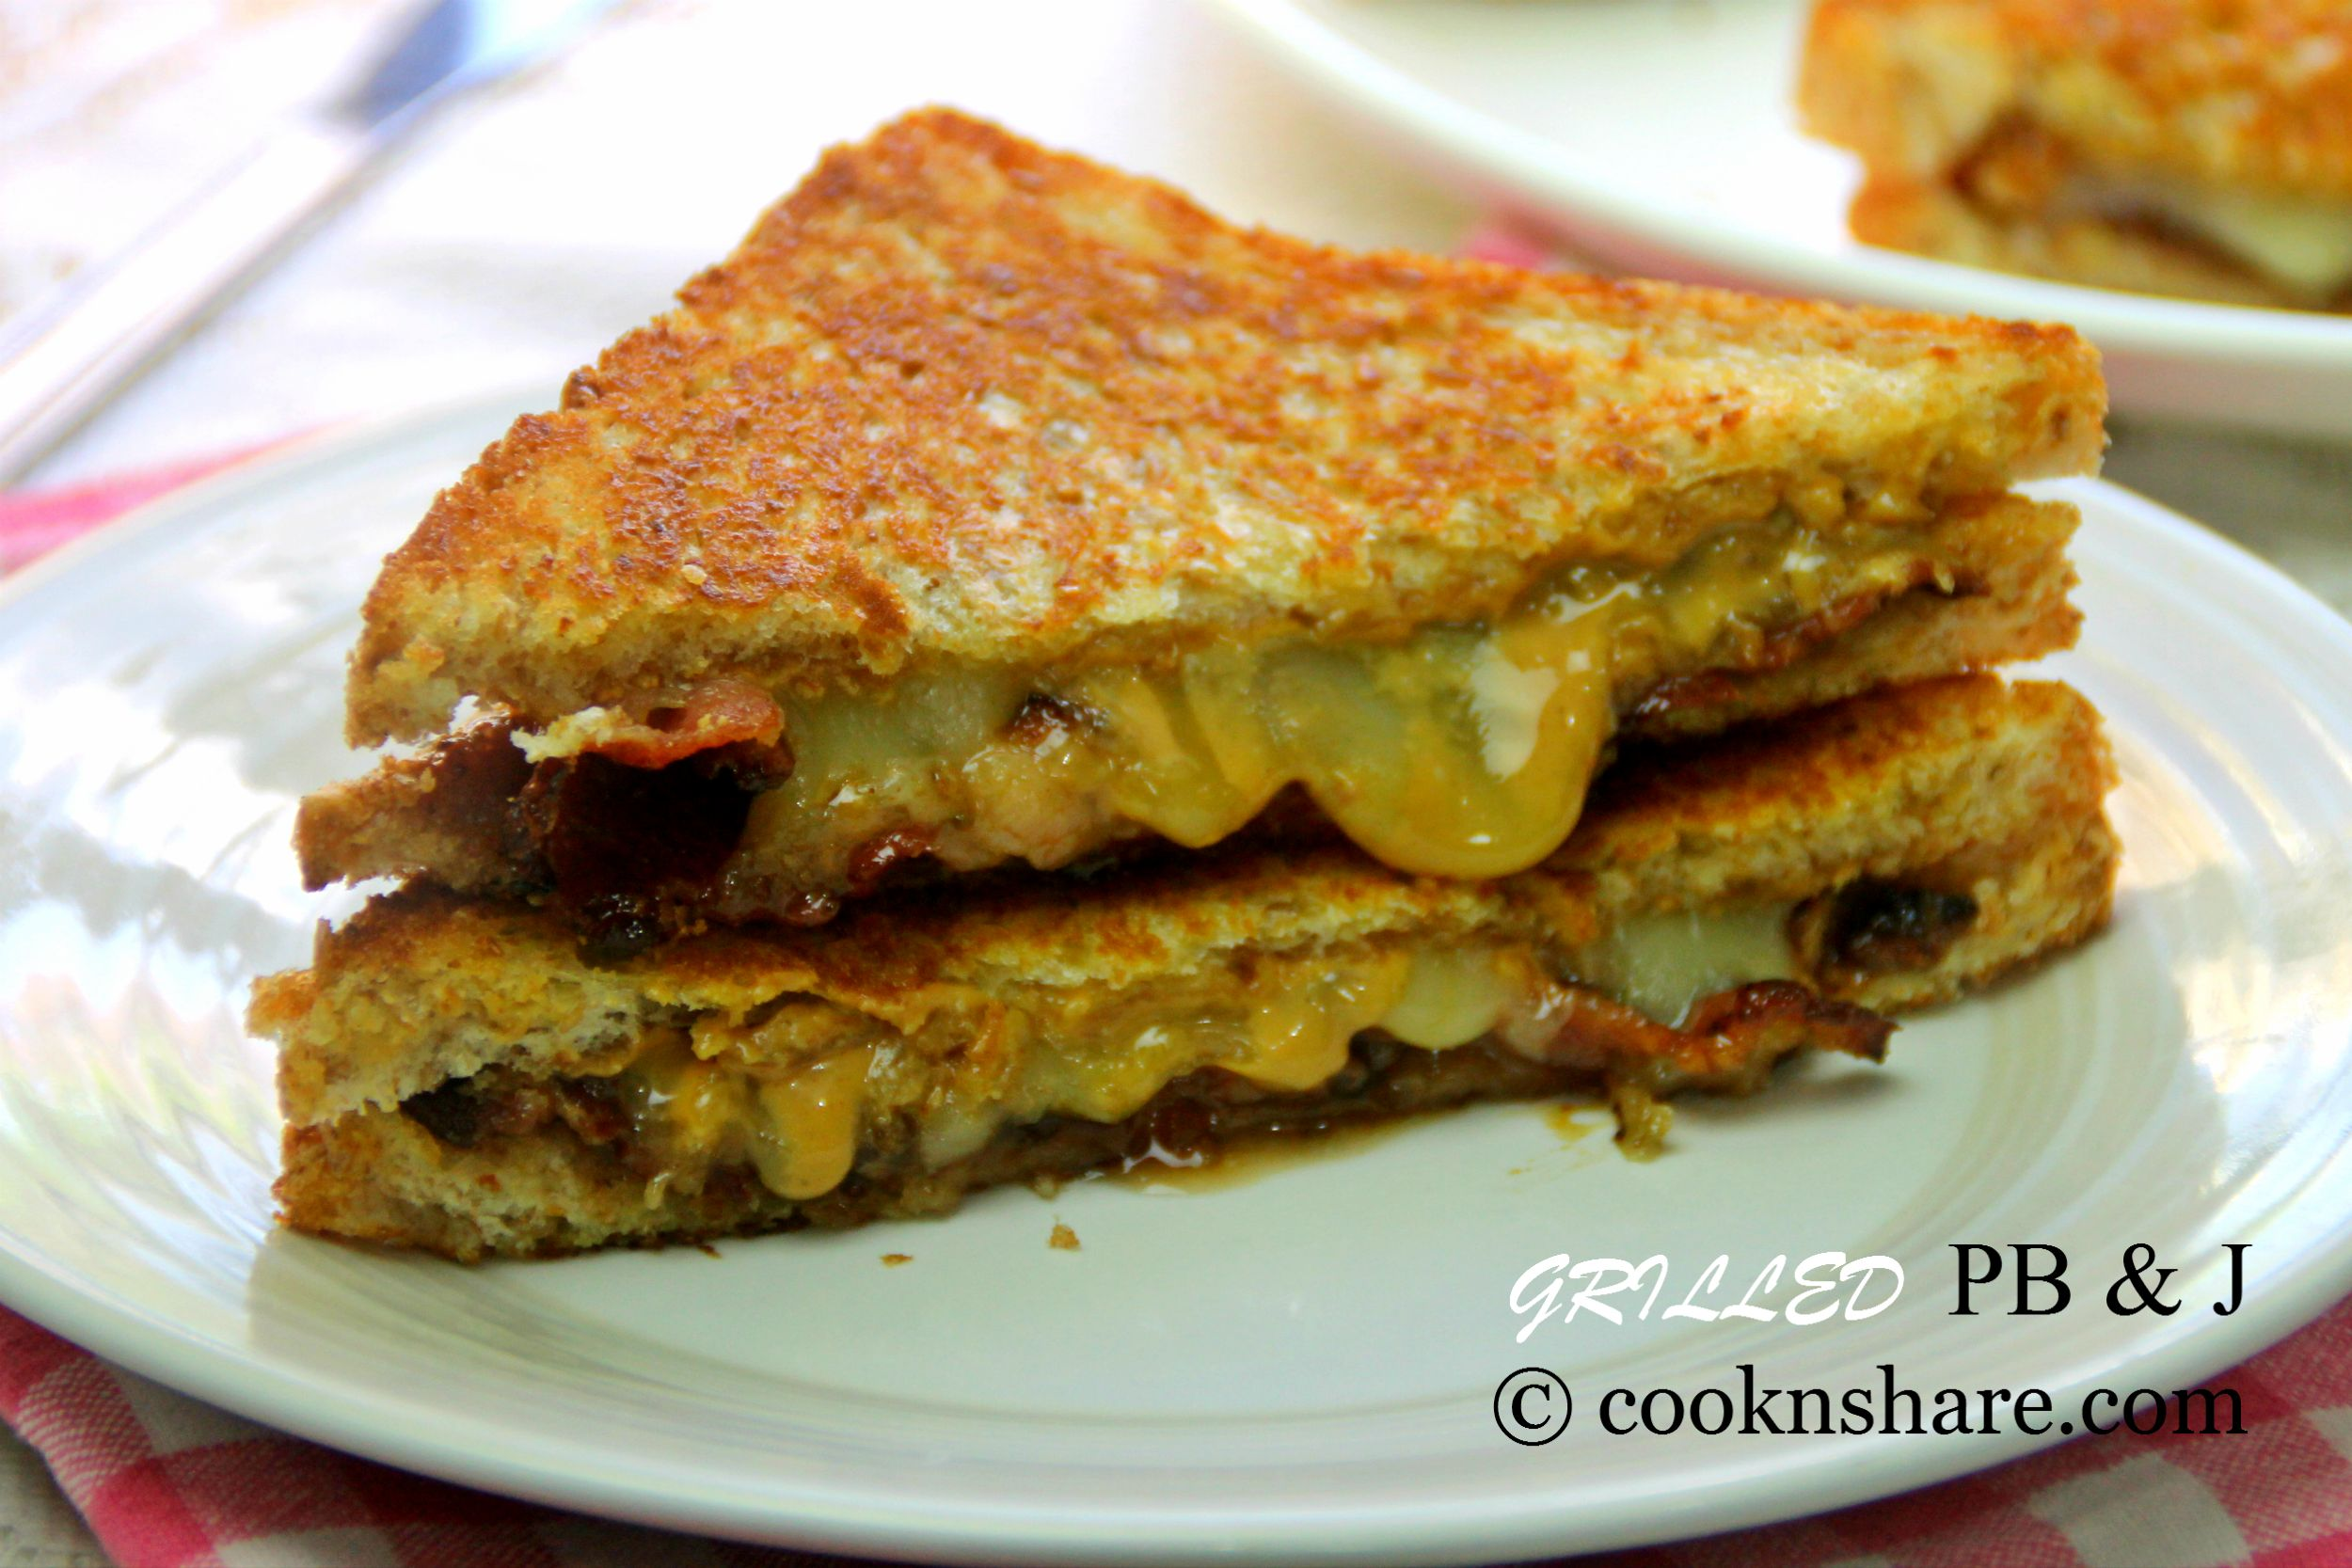 Peanut Butter And Jelly With Bacon Cook N Share World Cuisines